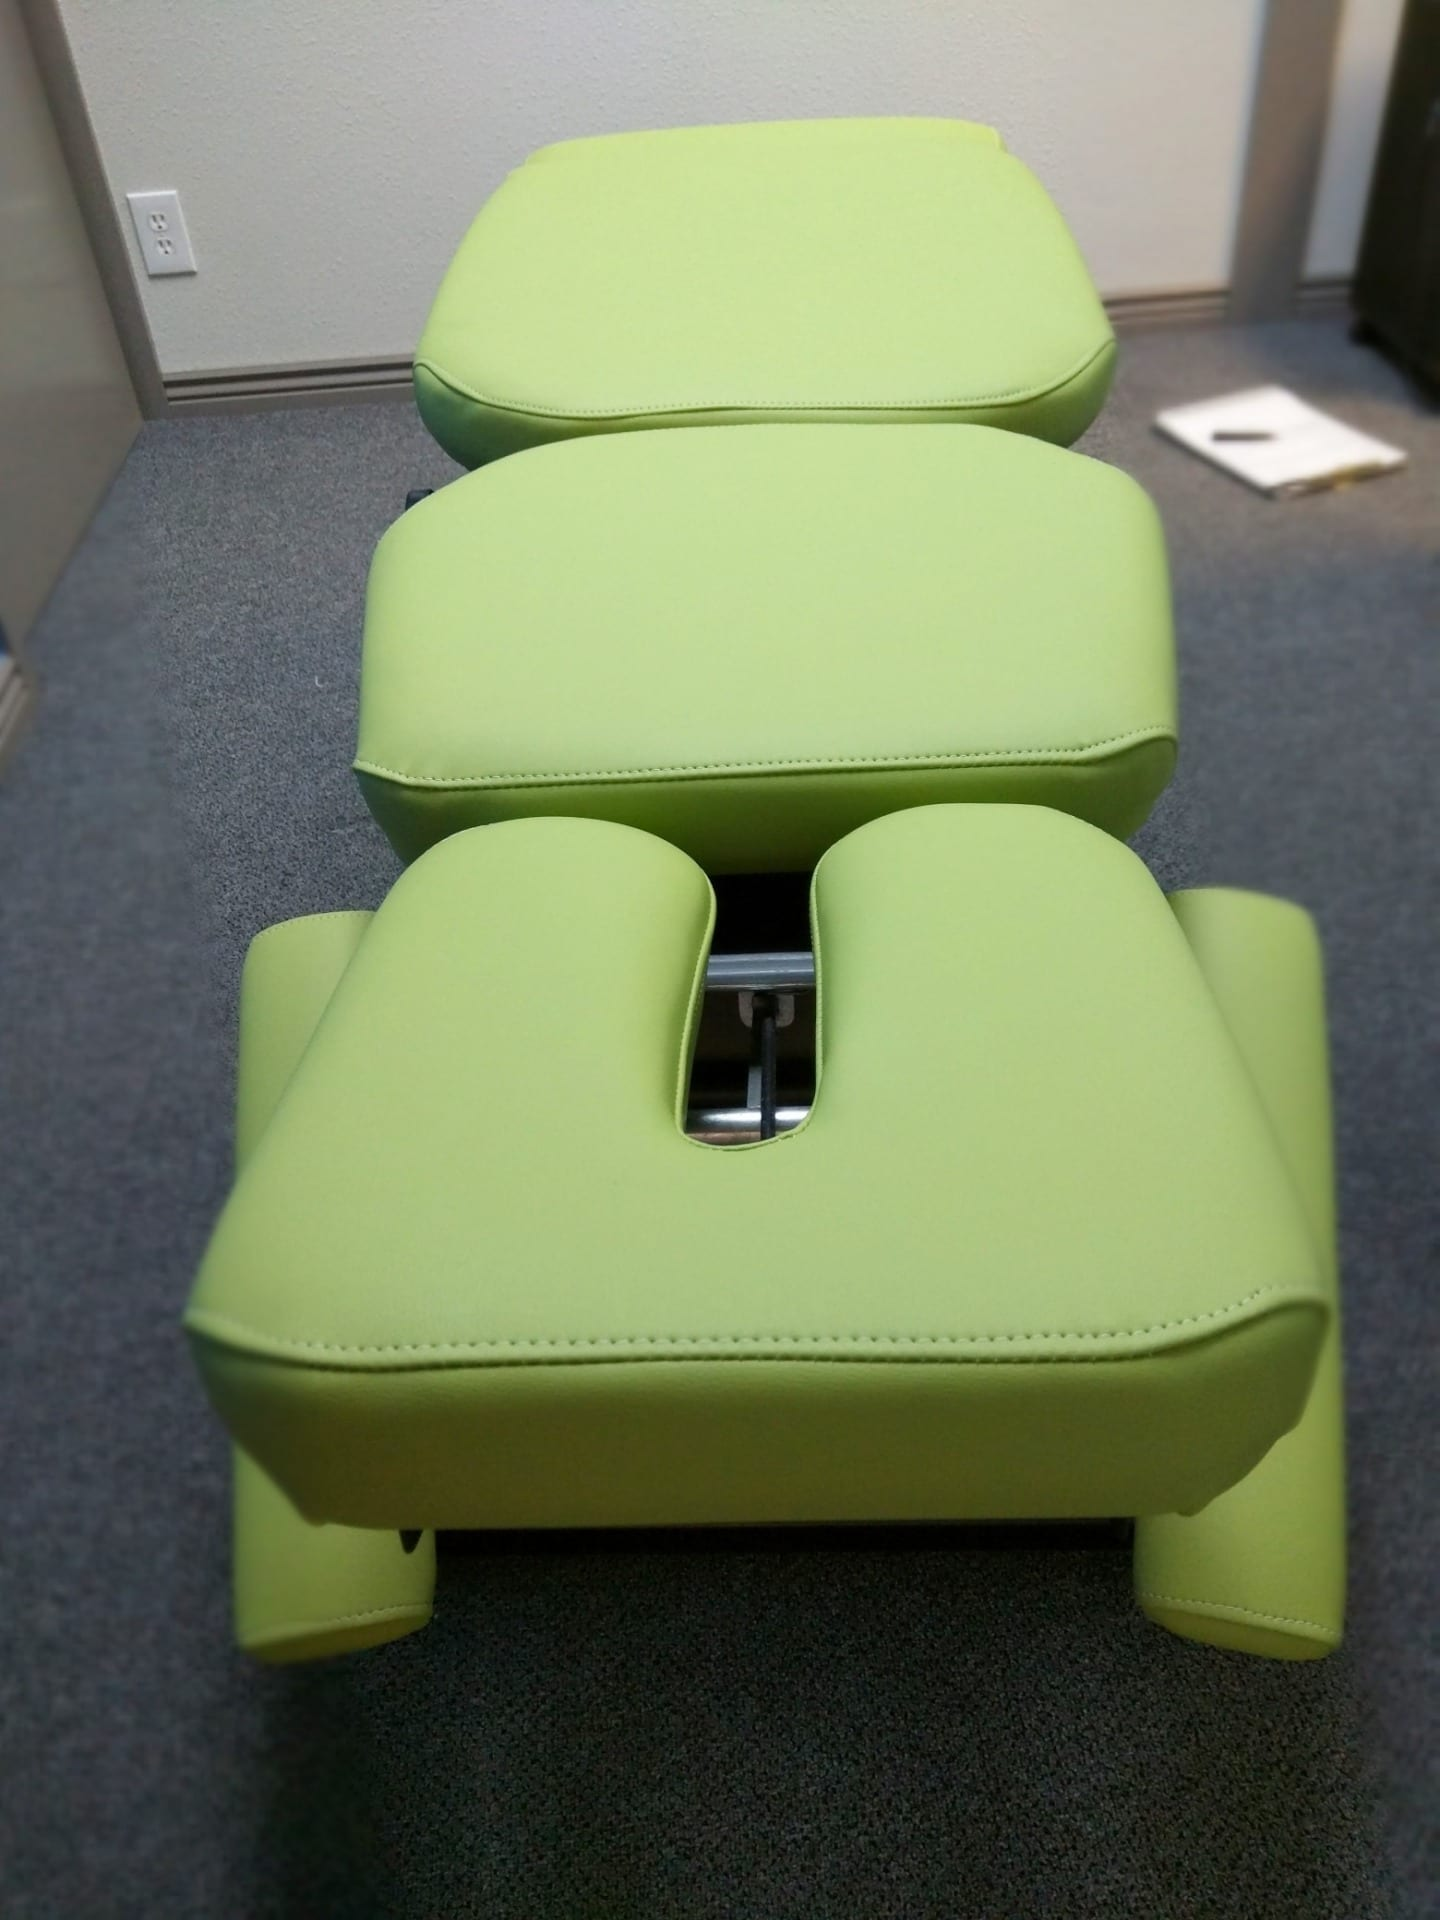 Chiropractic Therapy Table Upholstered with BoltaSport Olympus Honeydew